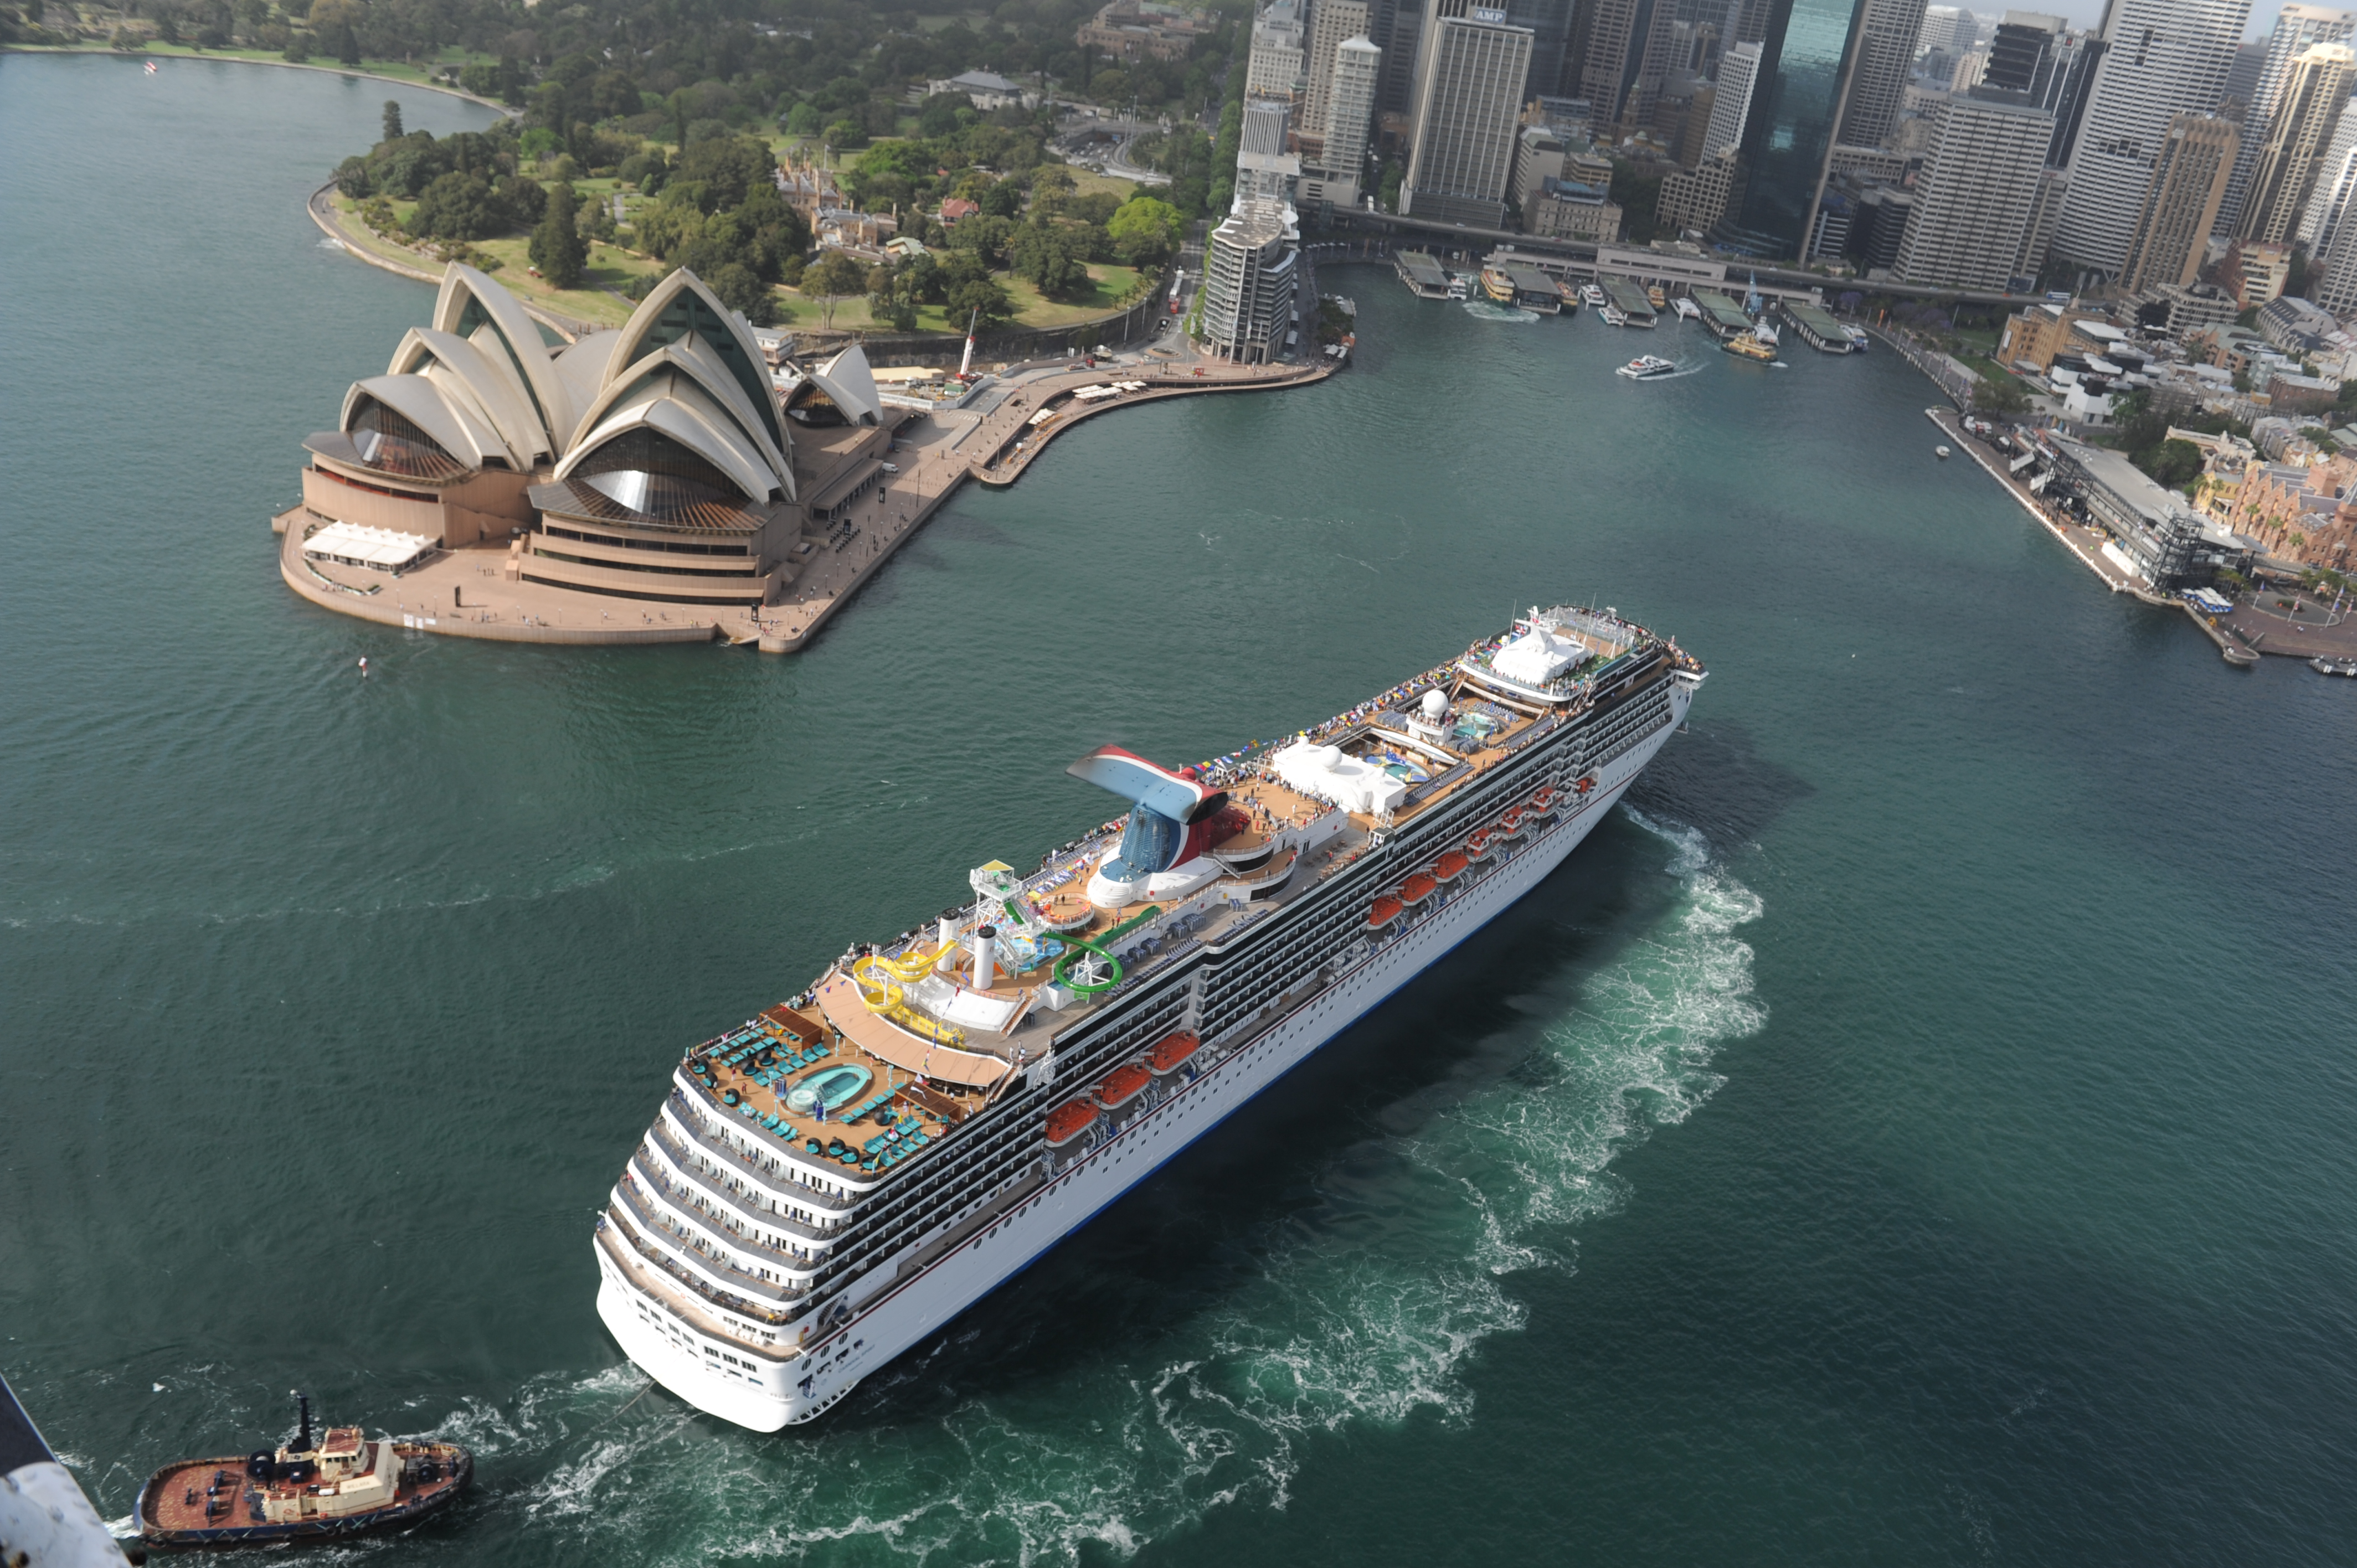 Carnival Cruise Lines reaffirms commitment to the Australian Market